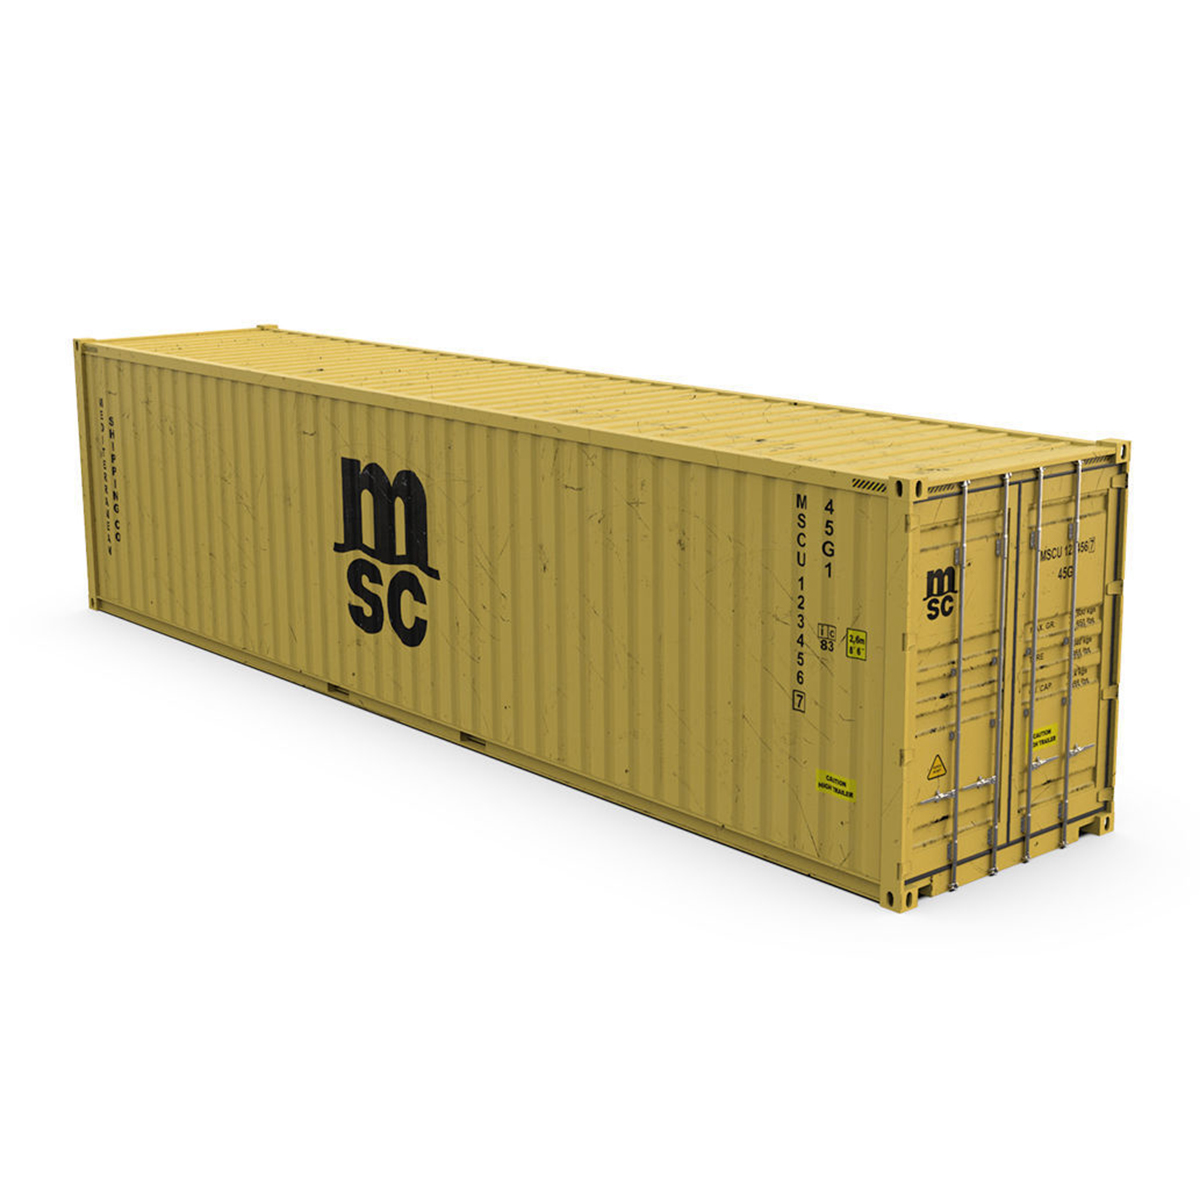 40 Feet High Cube MSC Shipping Container 3D Model